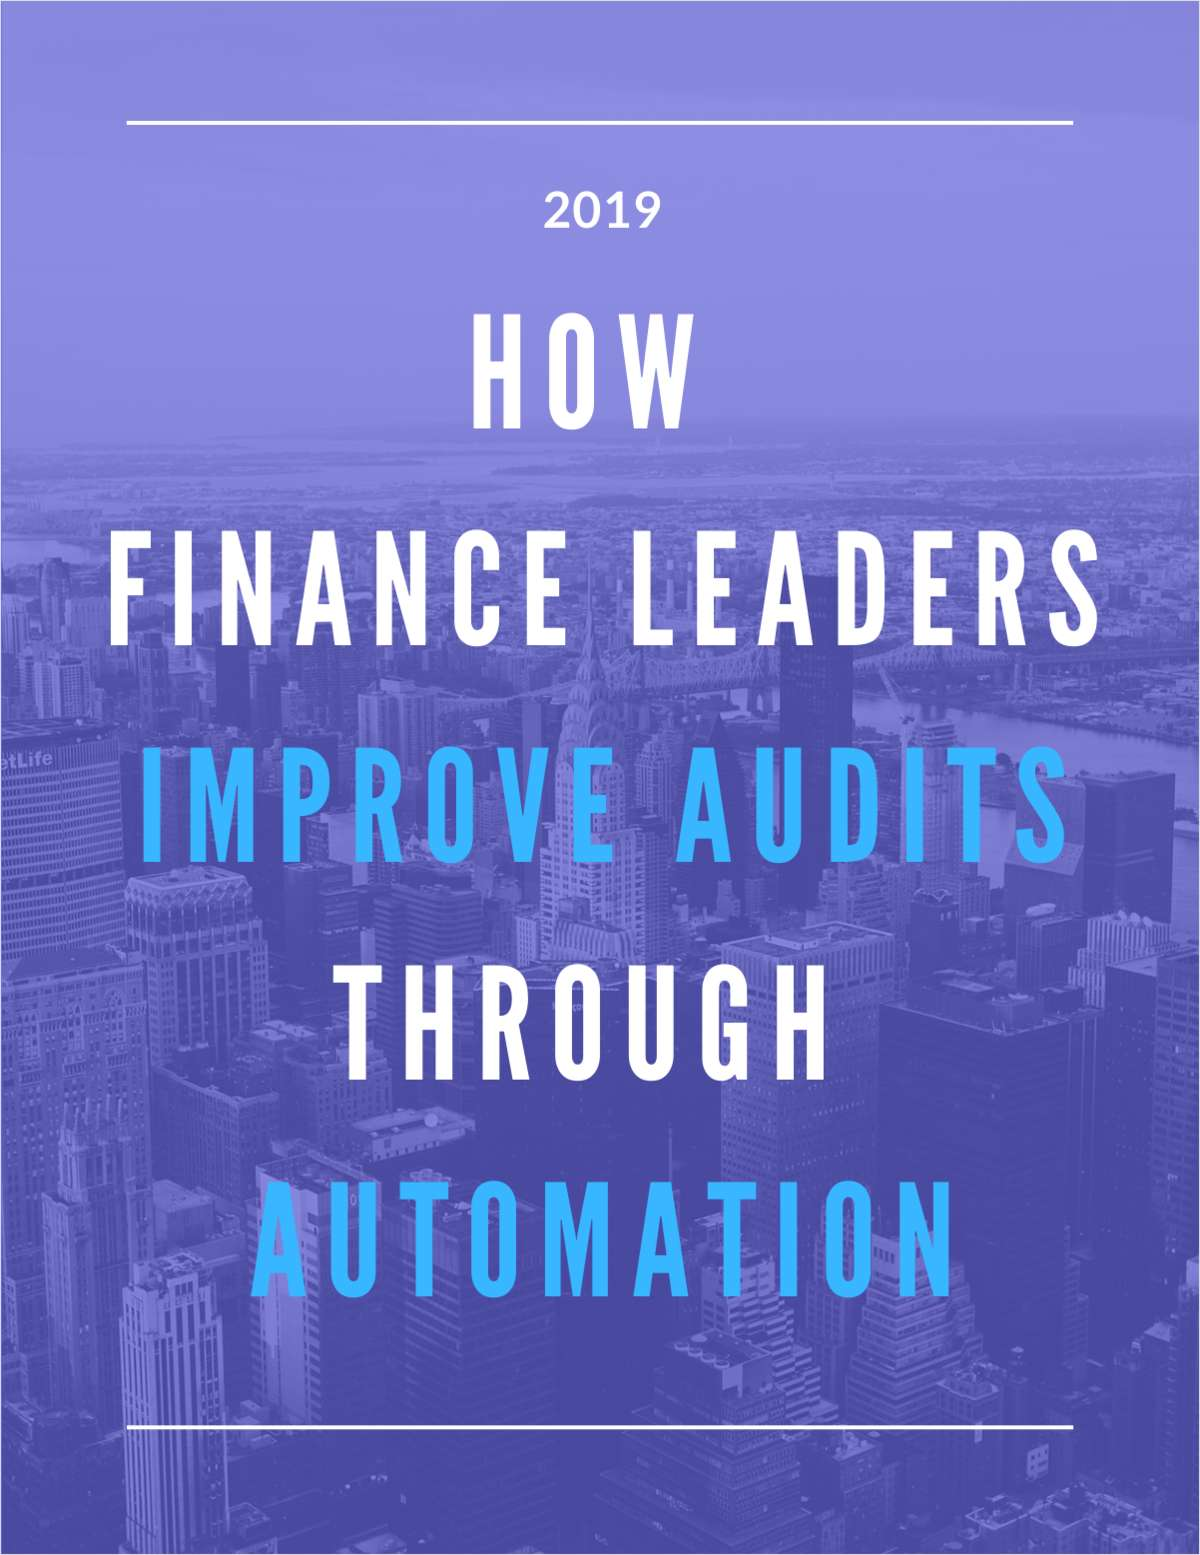 How Finance Leaders Improve Audits Through Automation